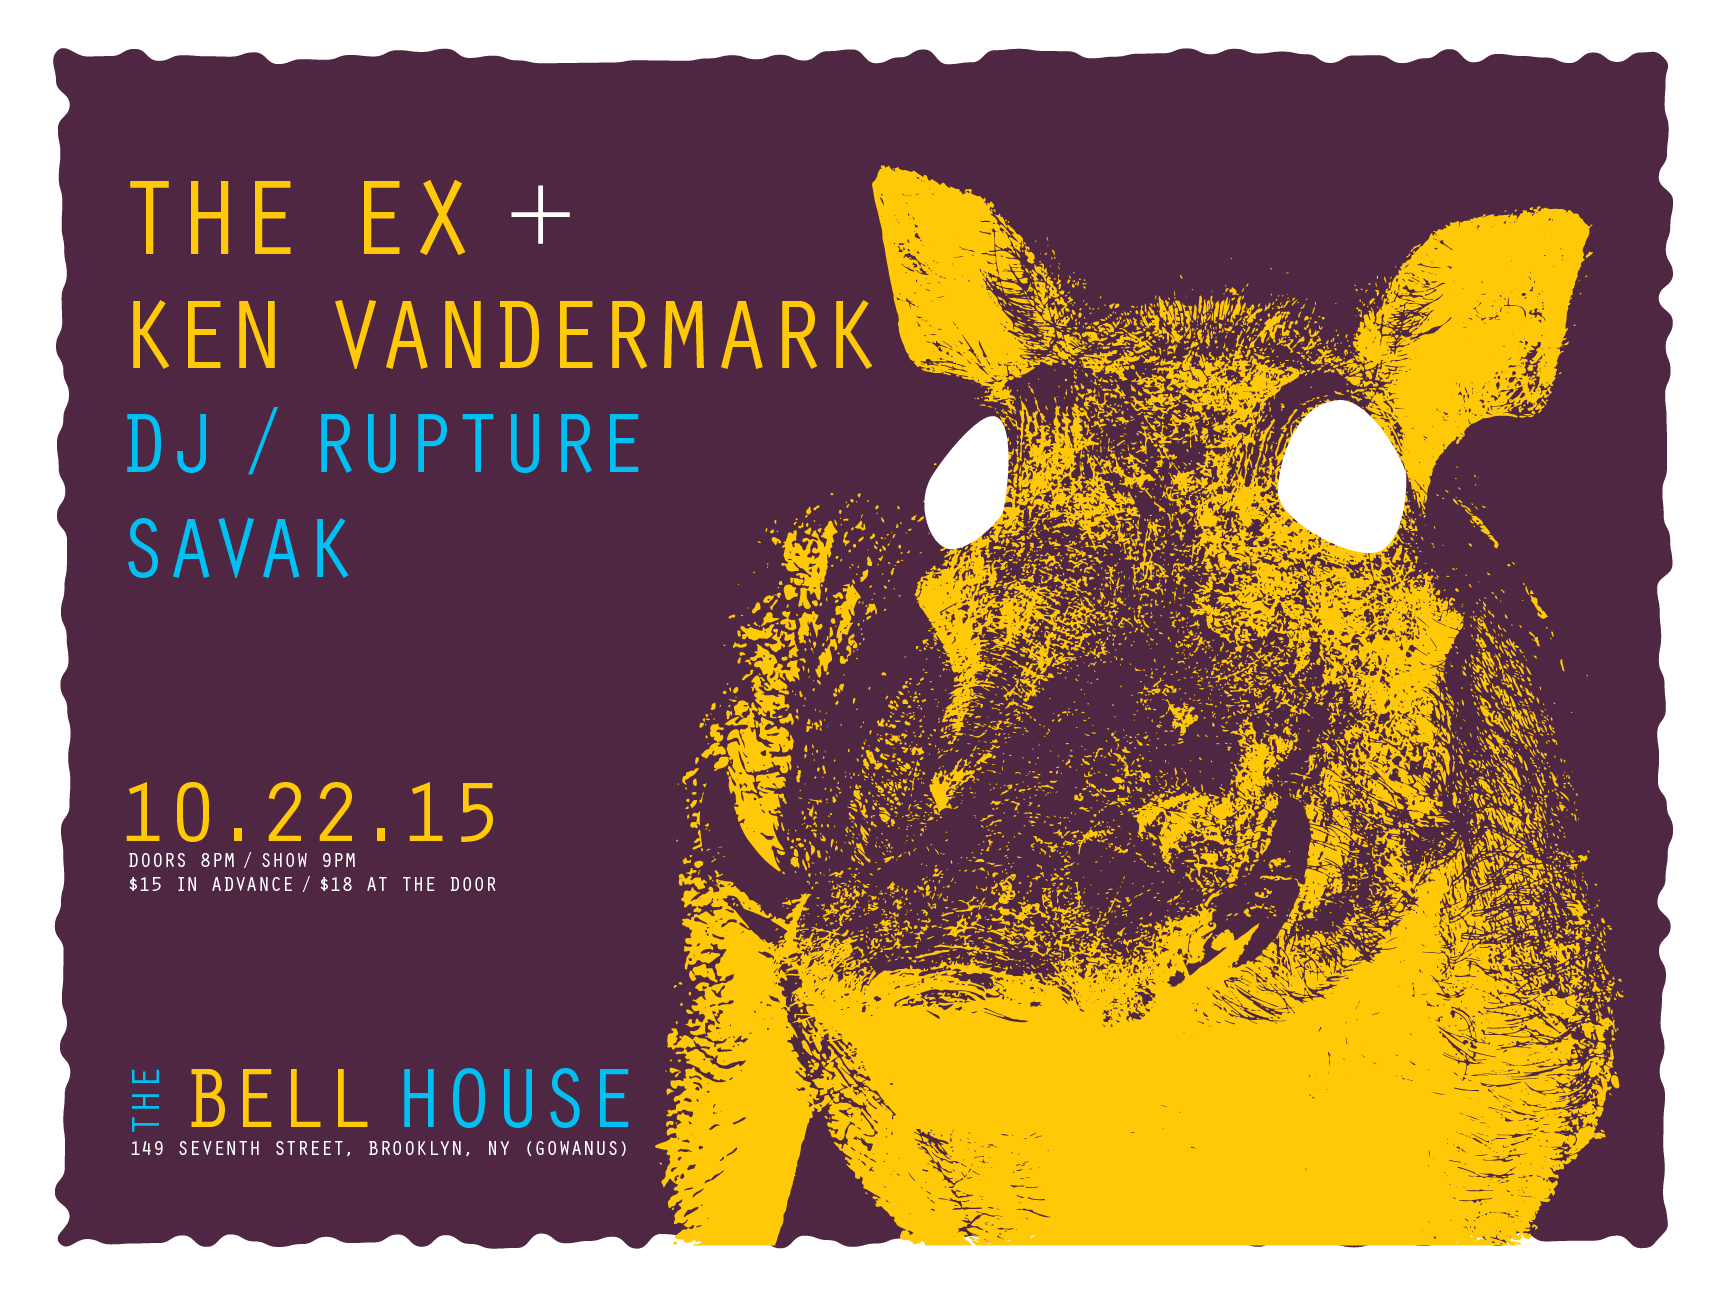 The Ex + Ken Vandermark, DJ/Rupture and SAVAK